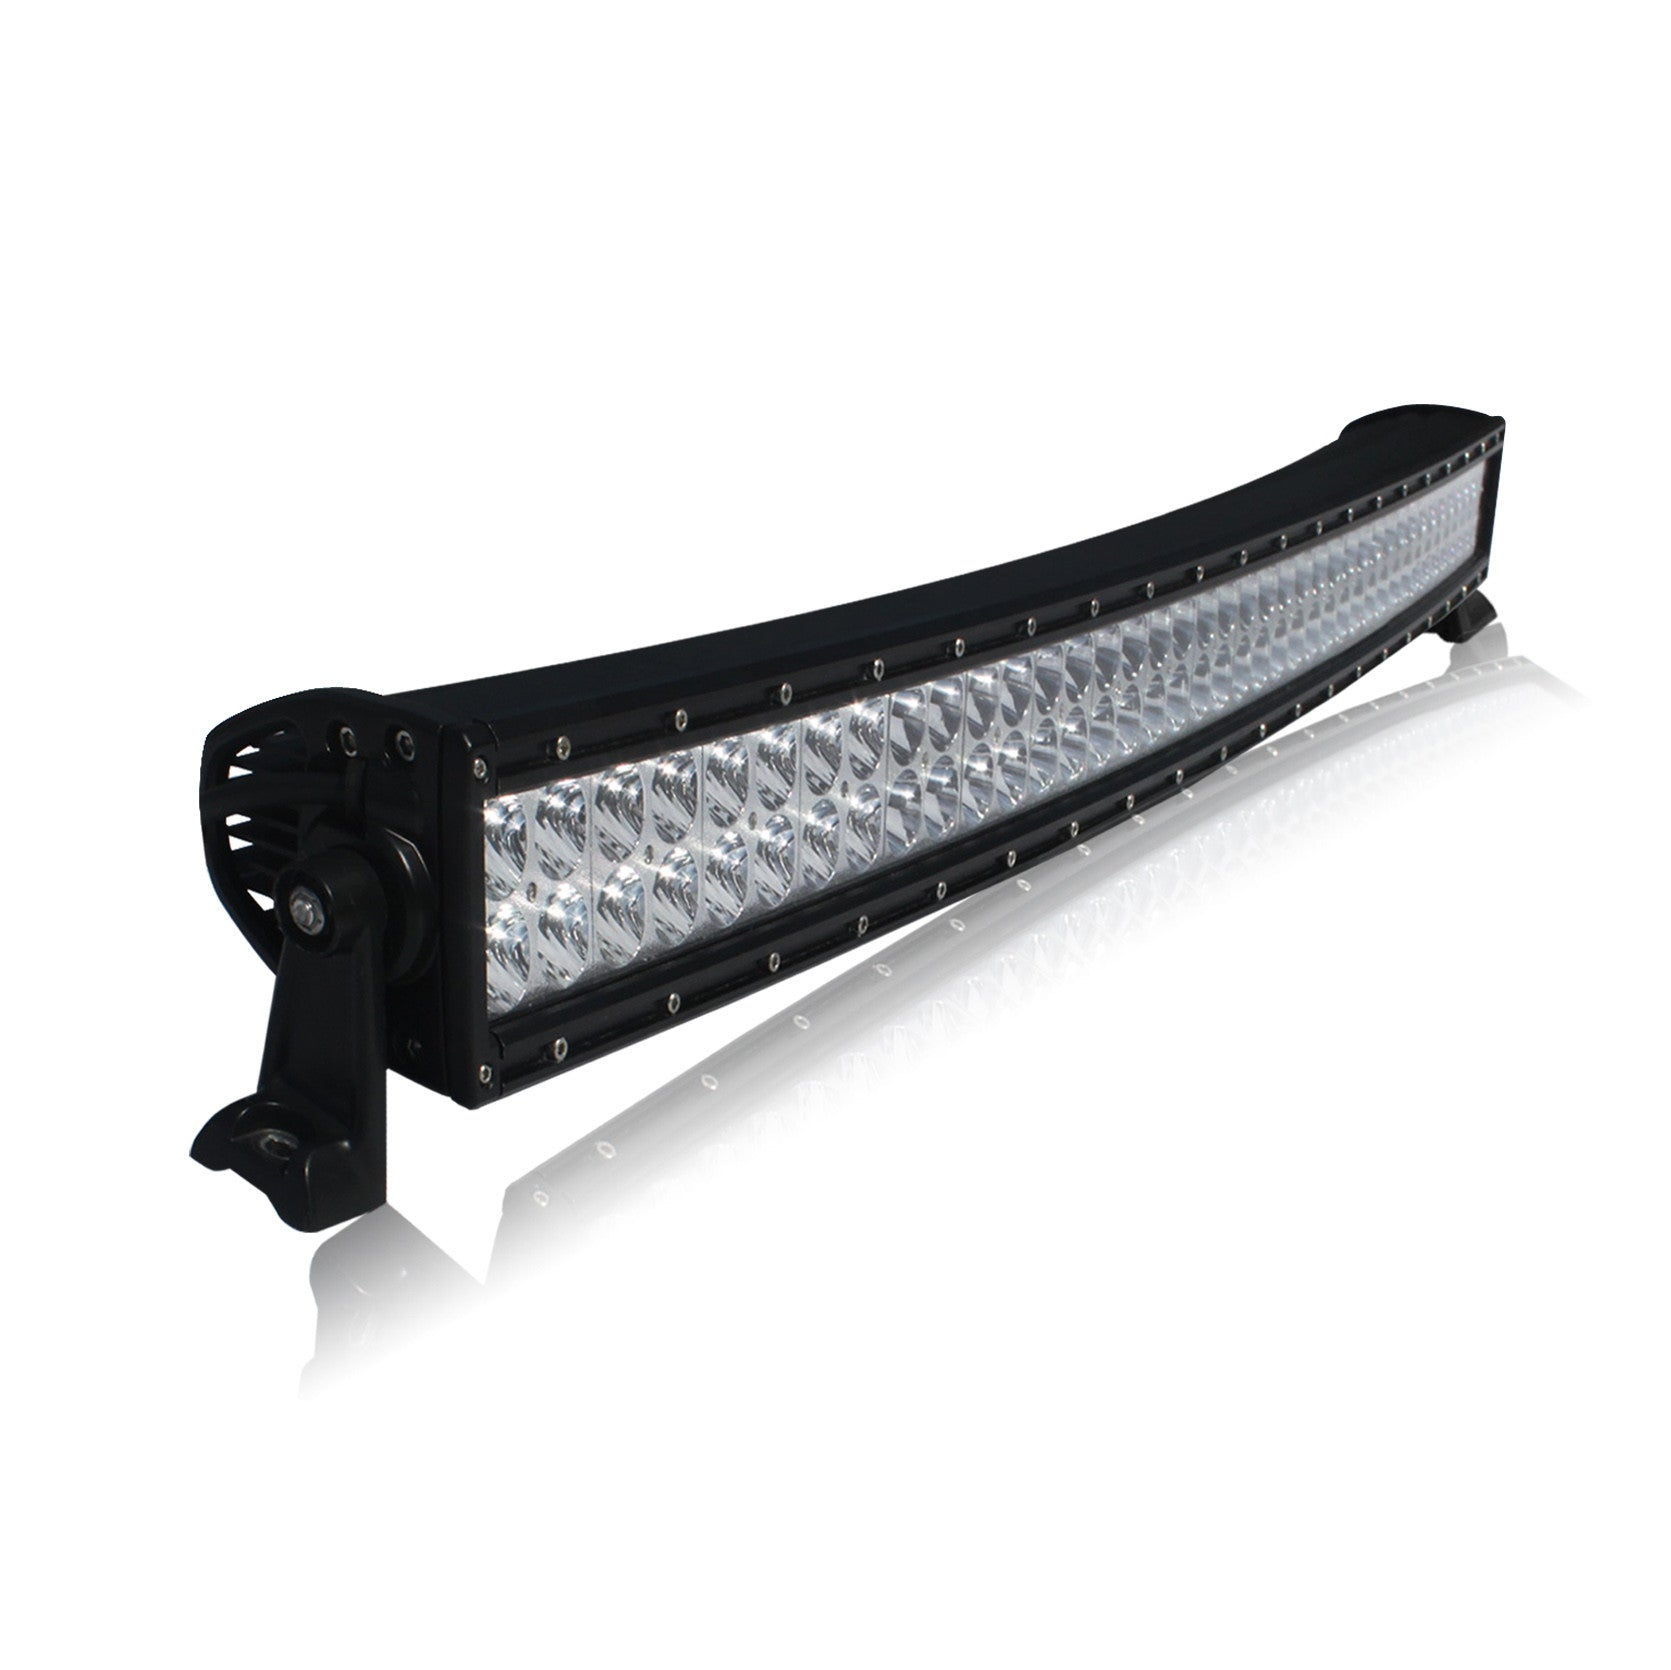 curved led light bars low profile led light bar tagged 30 inch led light bars. Black Bedroom Furniture Sets. Home Design Ideas